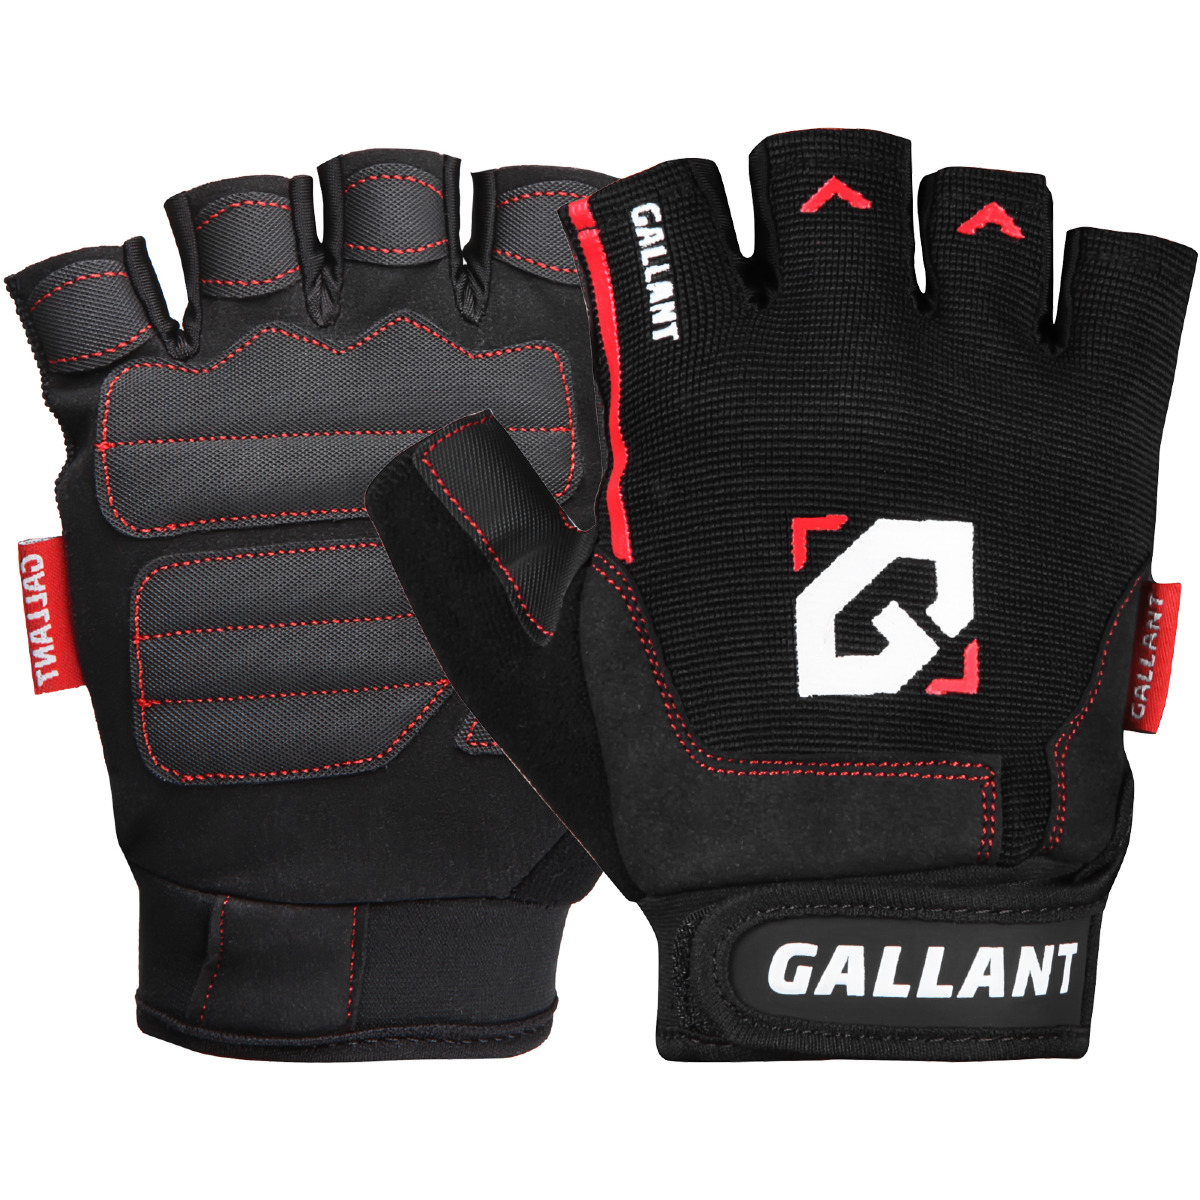 Gym Gloves Weight Lifting Leather Wrist Support Glove Aud: Gallant Gel Weight Lifting Gym Gloves Body Building